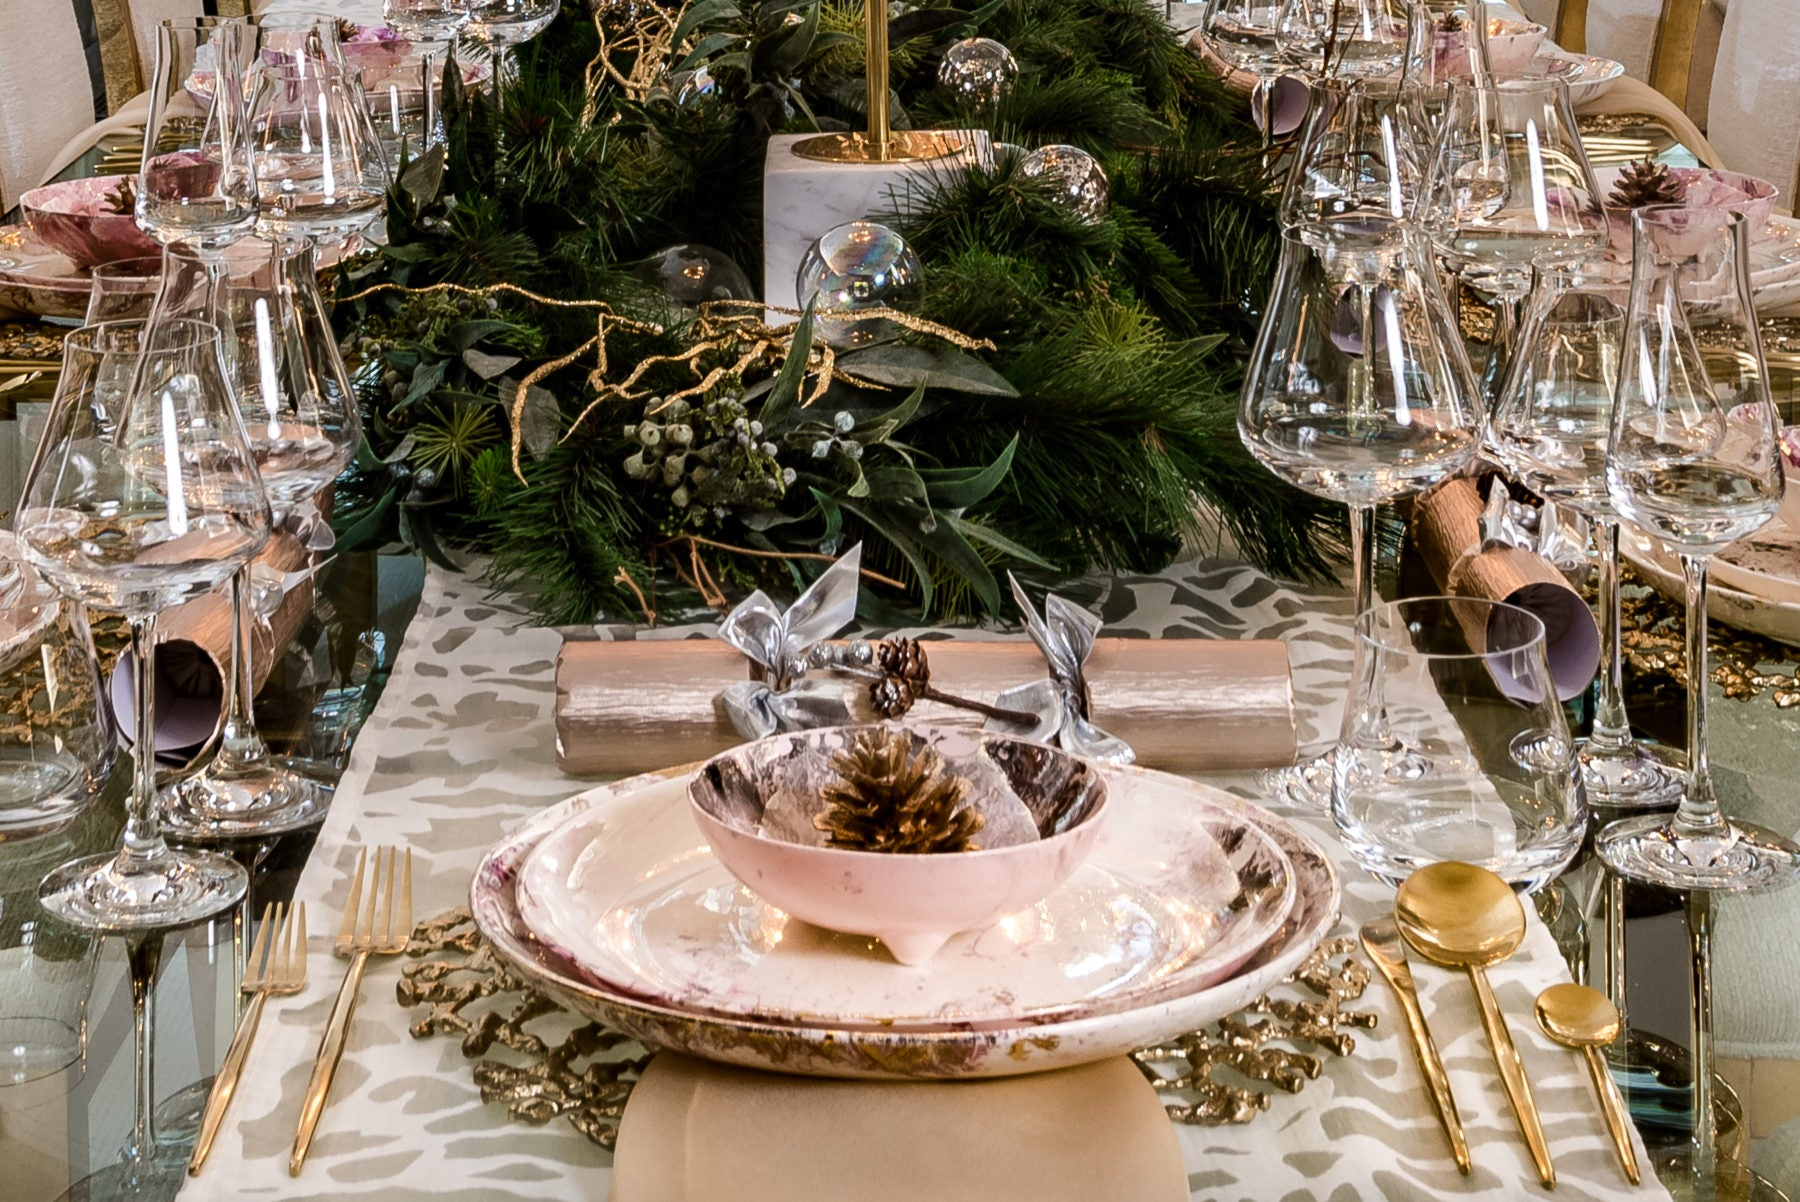 Luxury Christmas Table Setting   Muted Gold Tableware   LuxDeco.com